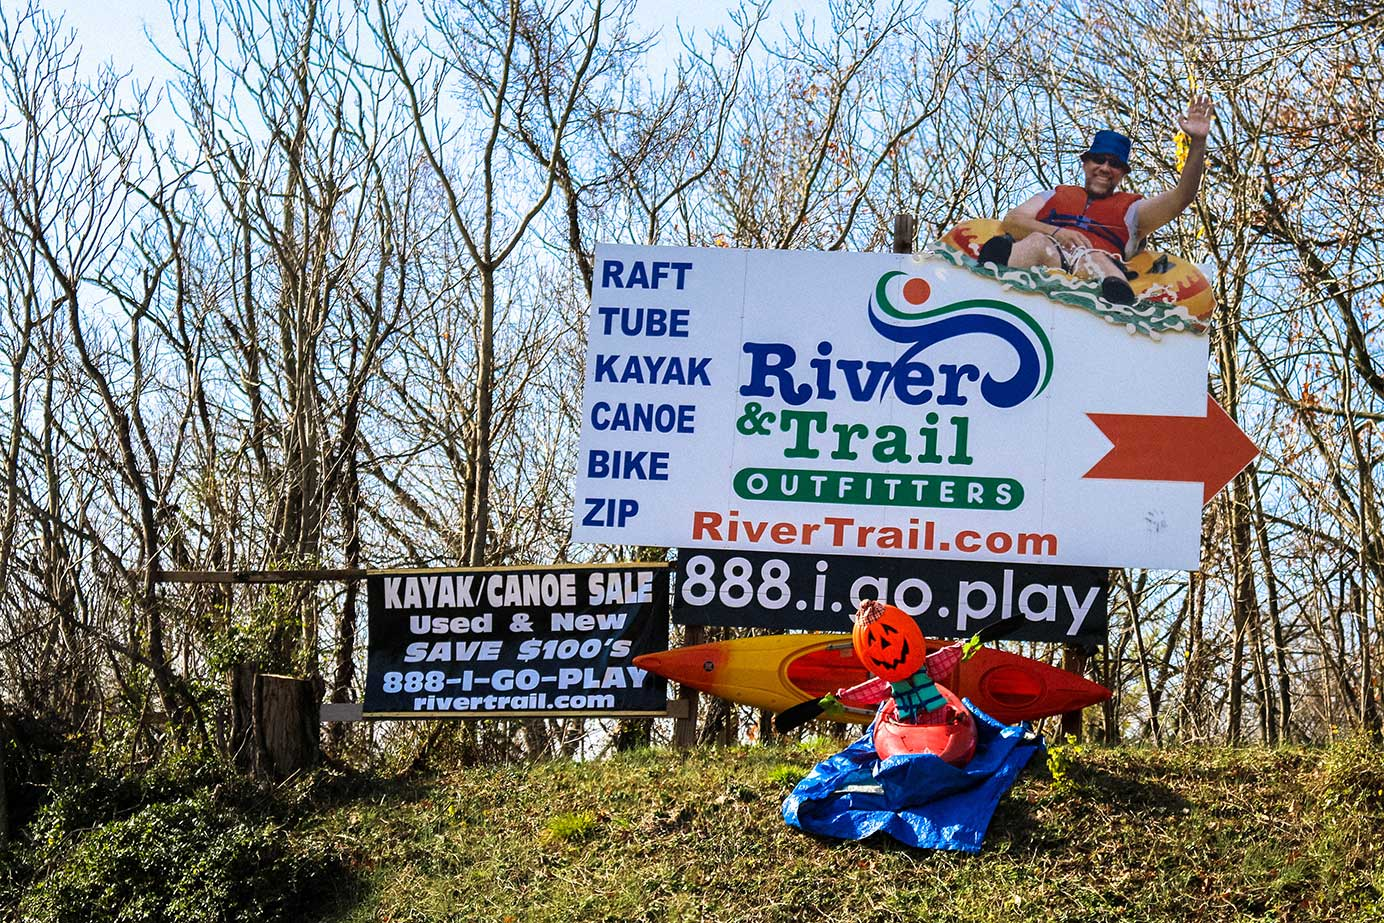 River & Trail Outfitters in Harper's Ferry, WV